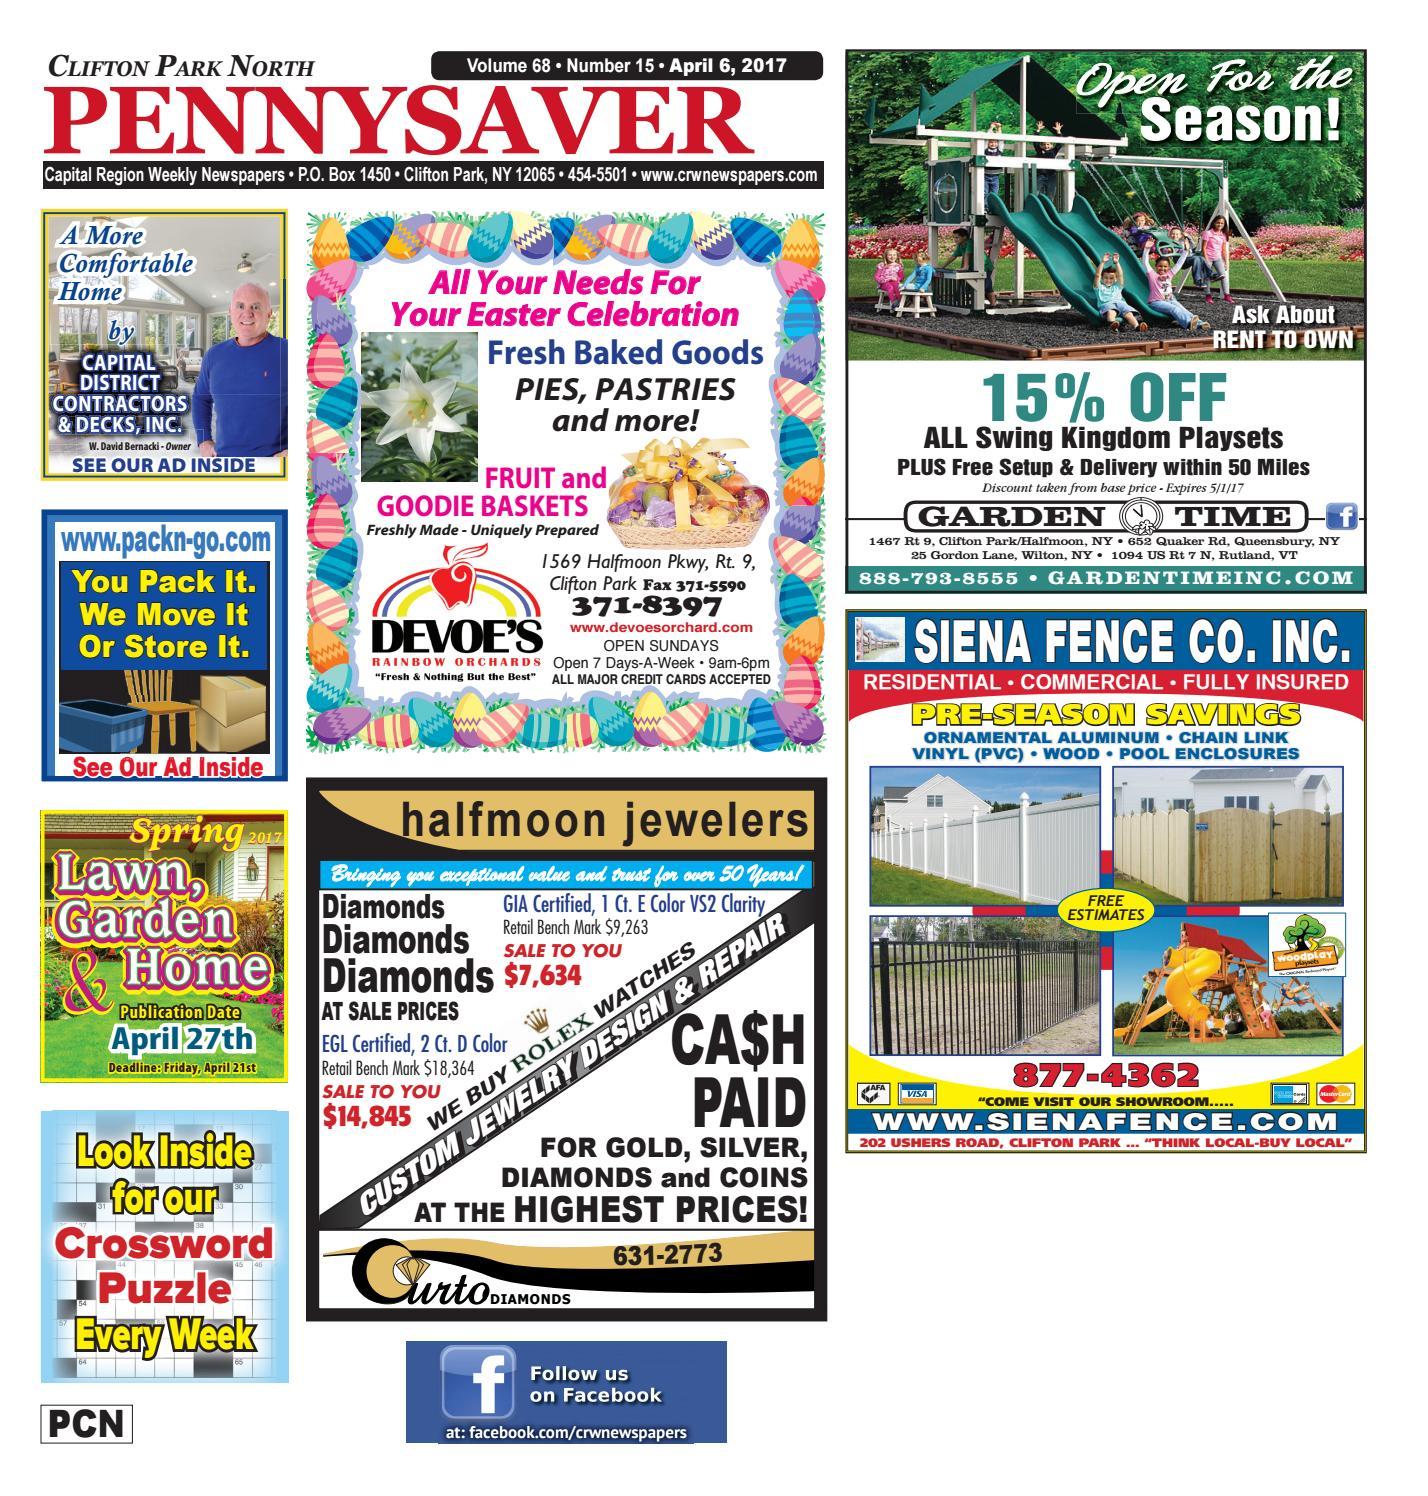 Clifton park north pennysaver 040617 by capital region weekly clifton park north pennysaver 040617 by capital region weekly newspapers issuu kristyandbryce Choice Image